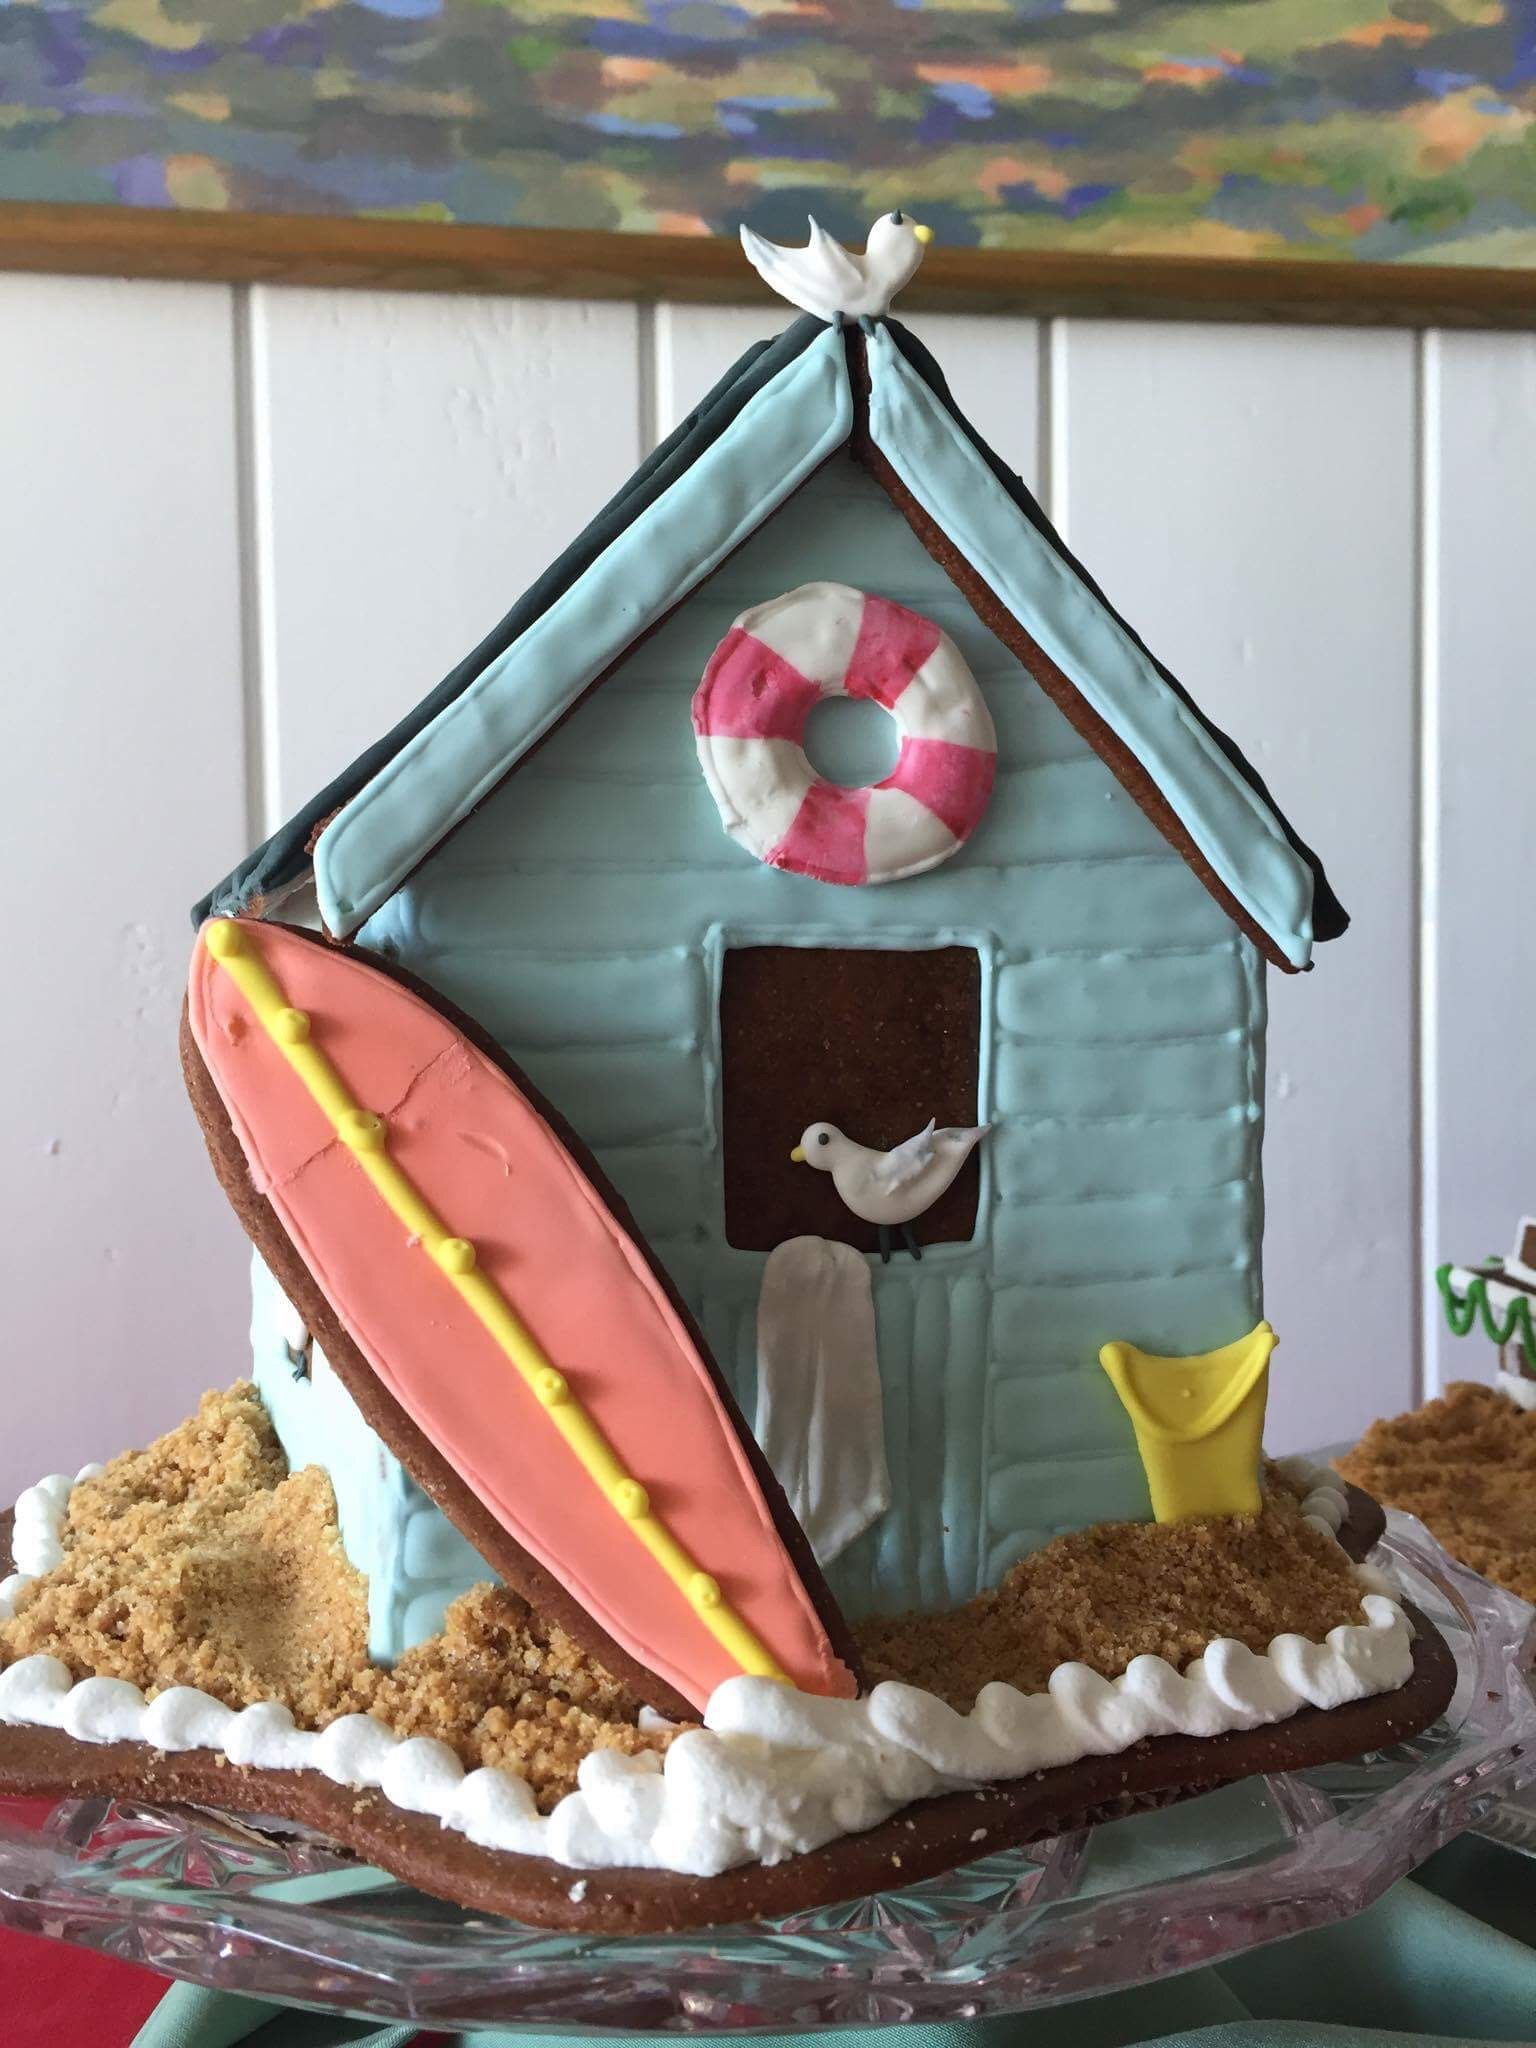 Beach Cottage in Gingerbread Gingerbread house cookies